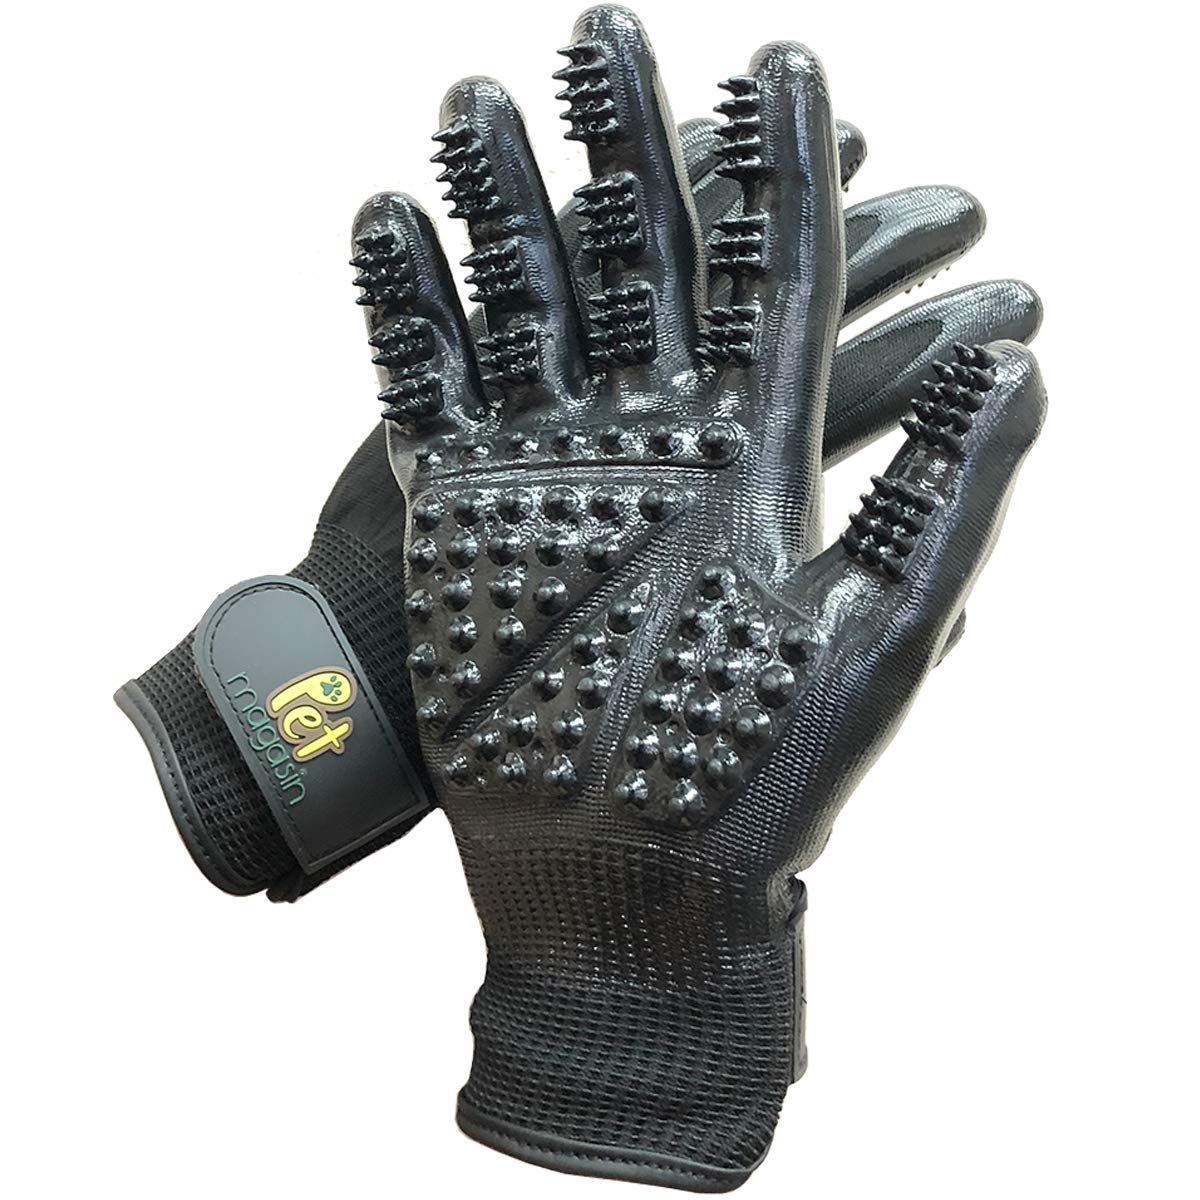 Pet Magasin Grooming Gloves One Size Fit All Works for Dogs, Horses, Cats and Other Animals